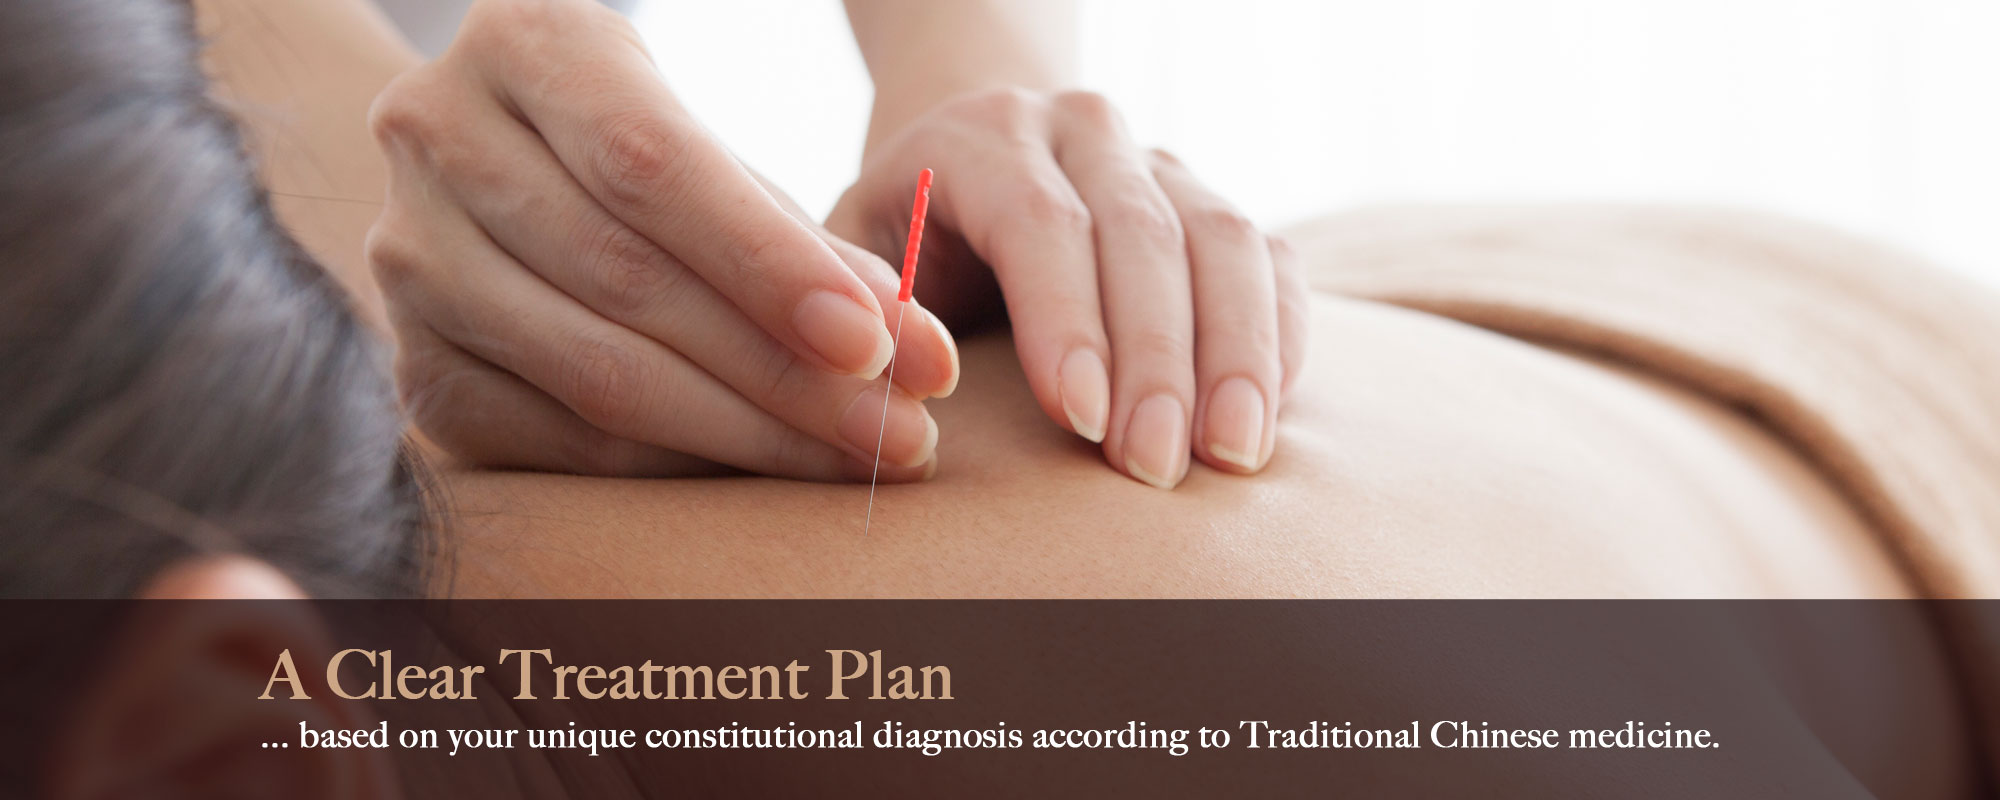 A Clear Treatment Plan ... Based On Your Unique Constitutional Diagnosis According To Traditional Chinese Medicine